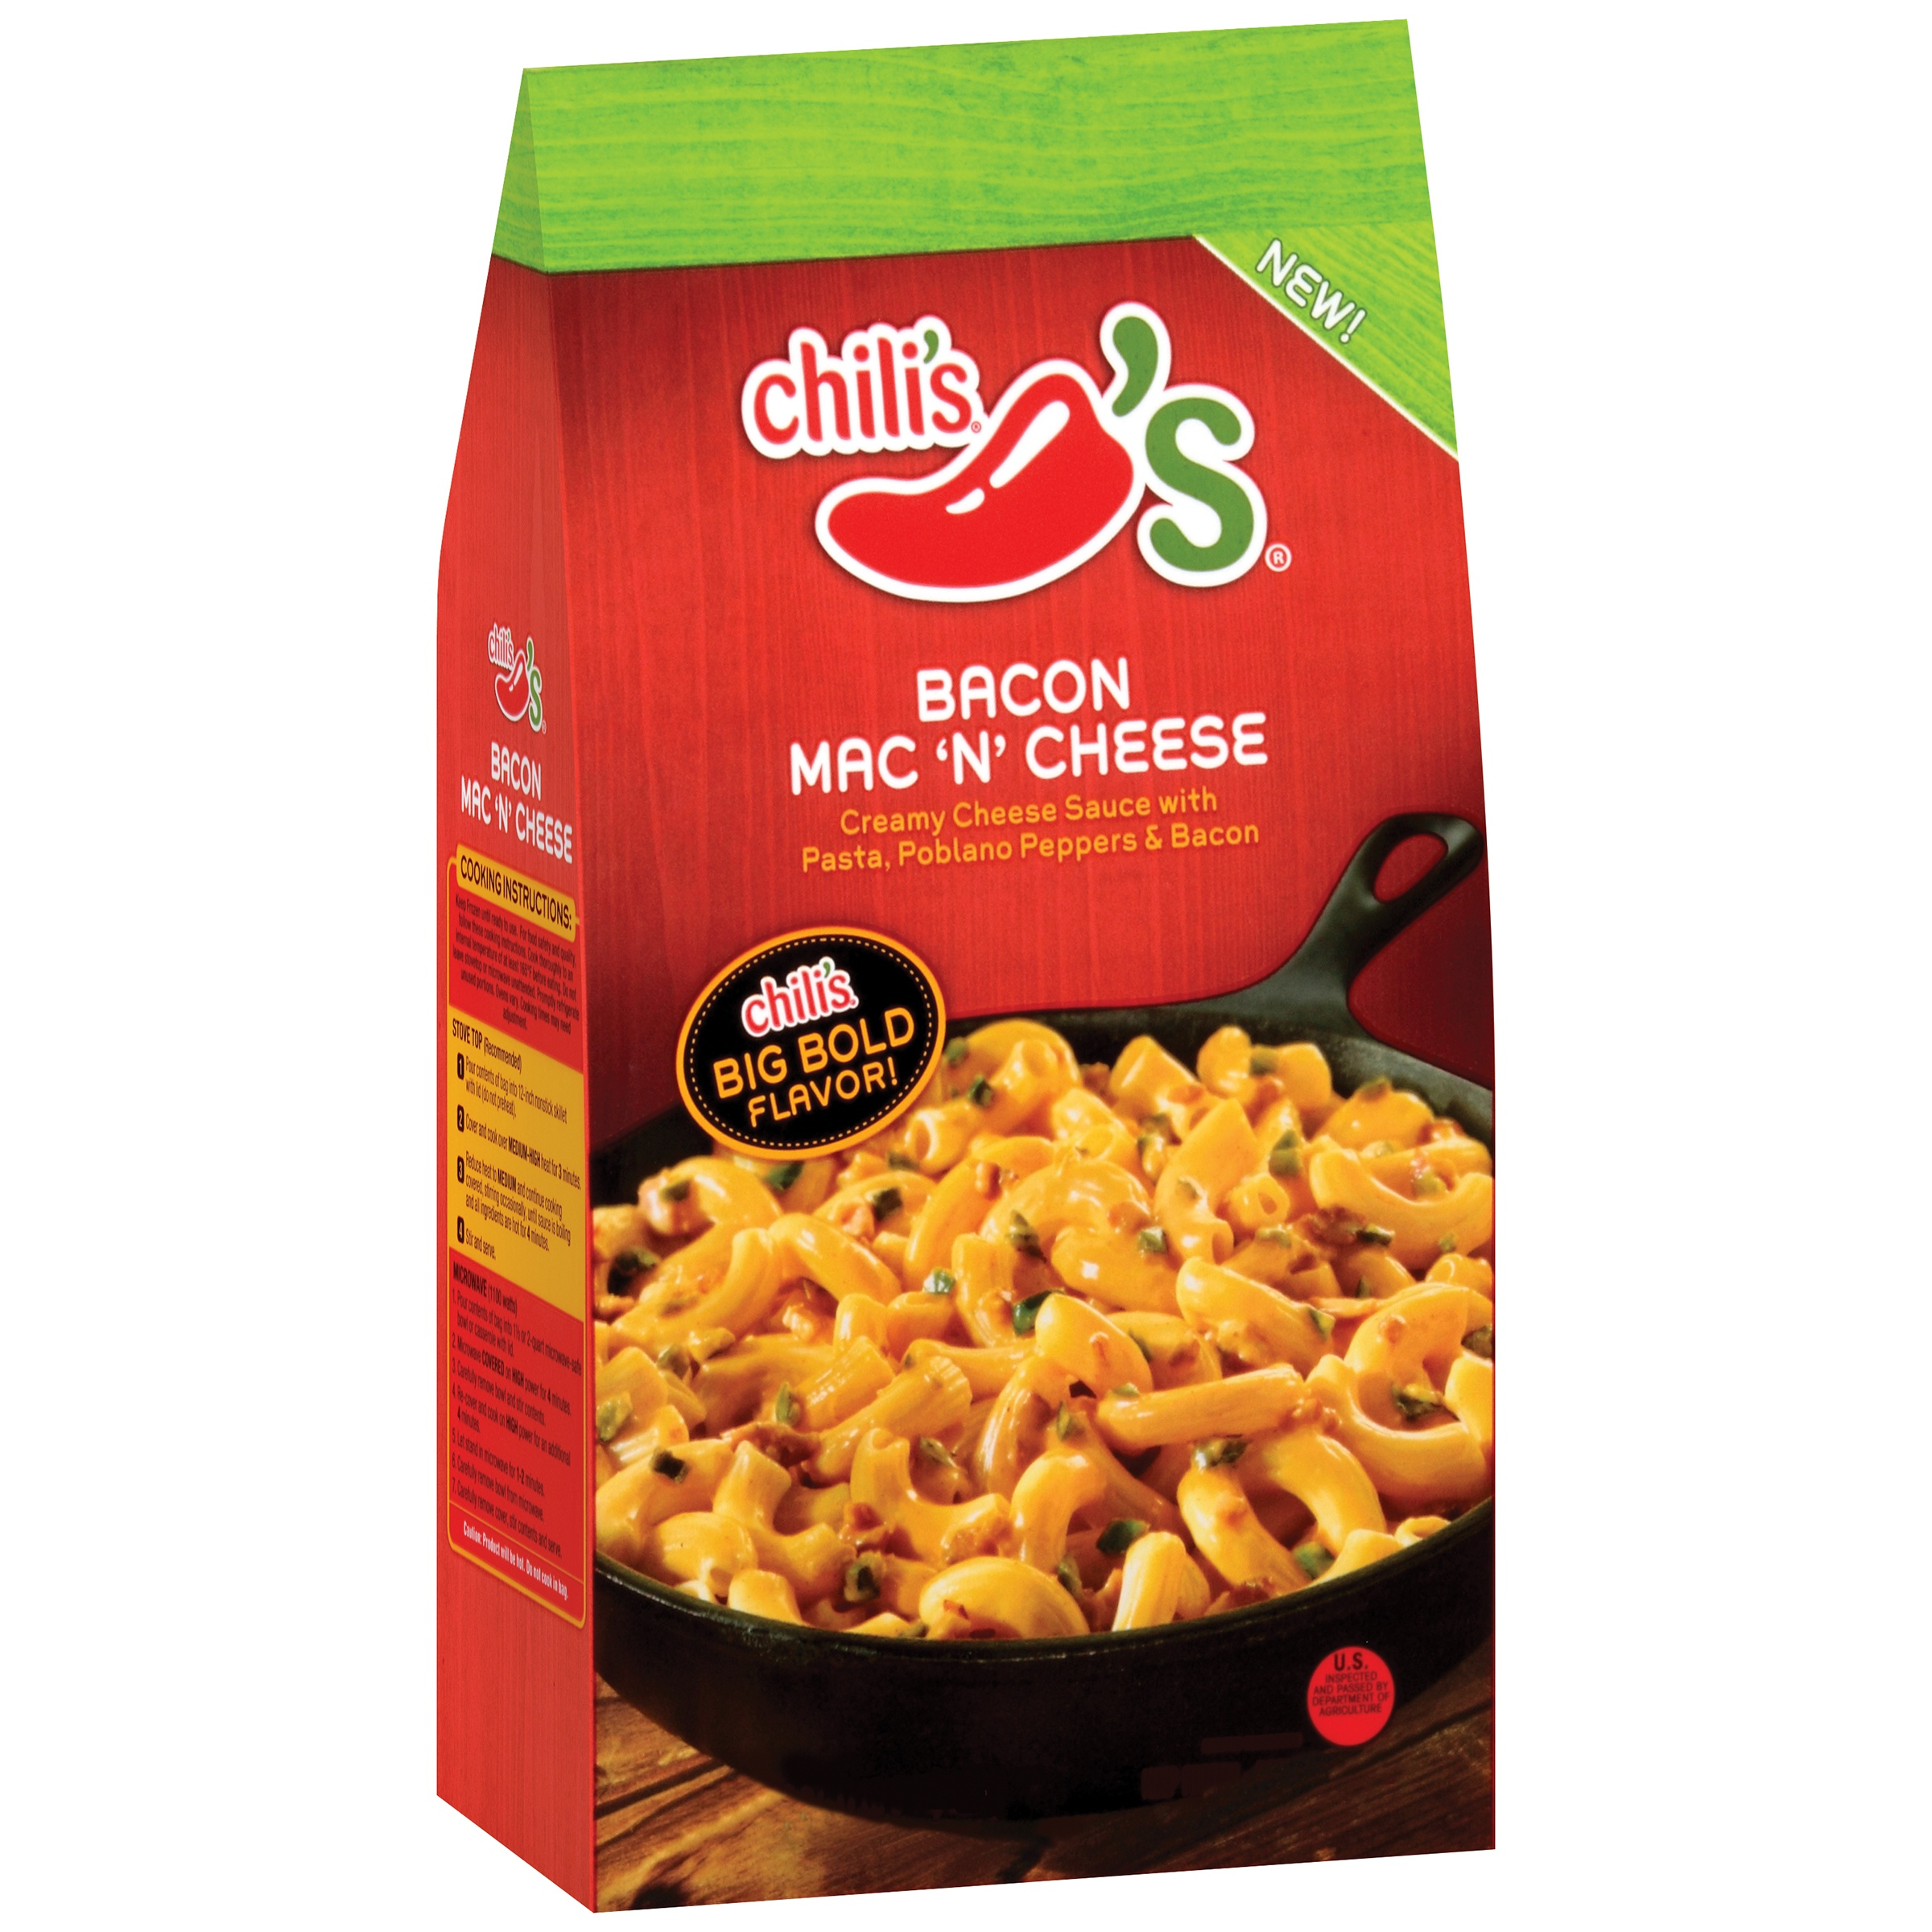 Chili's® Bacon Mac 'N' Cheese 22 oz. Bag